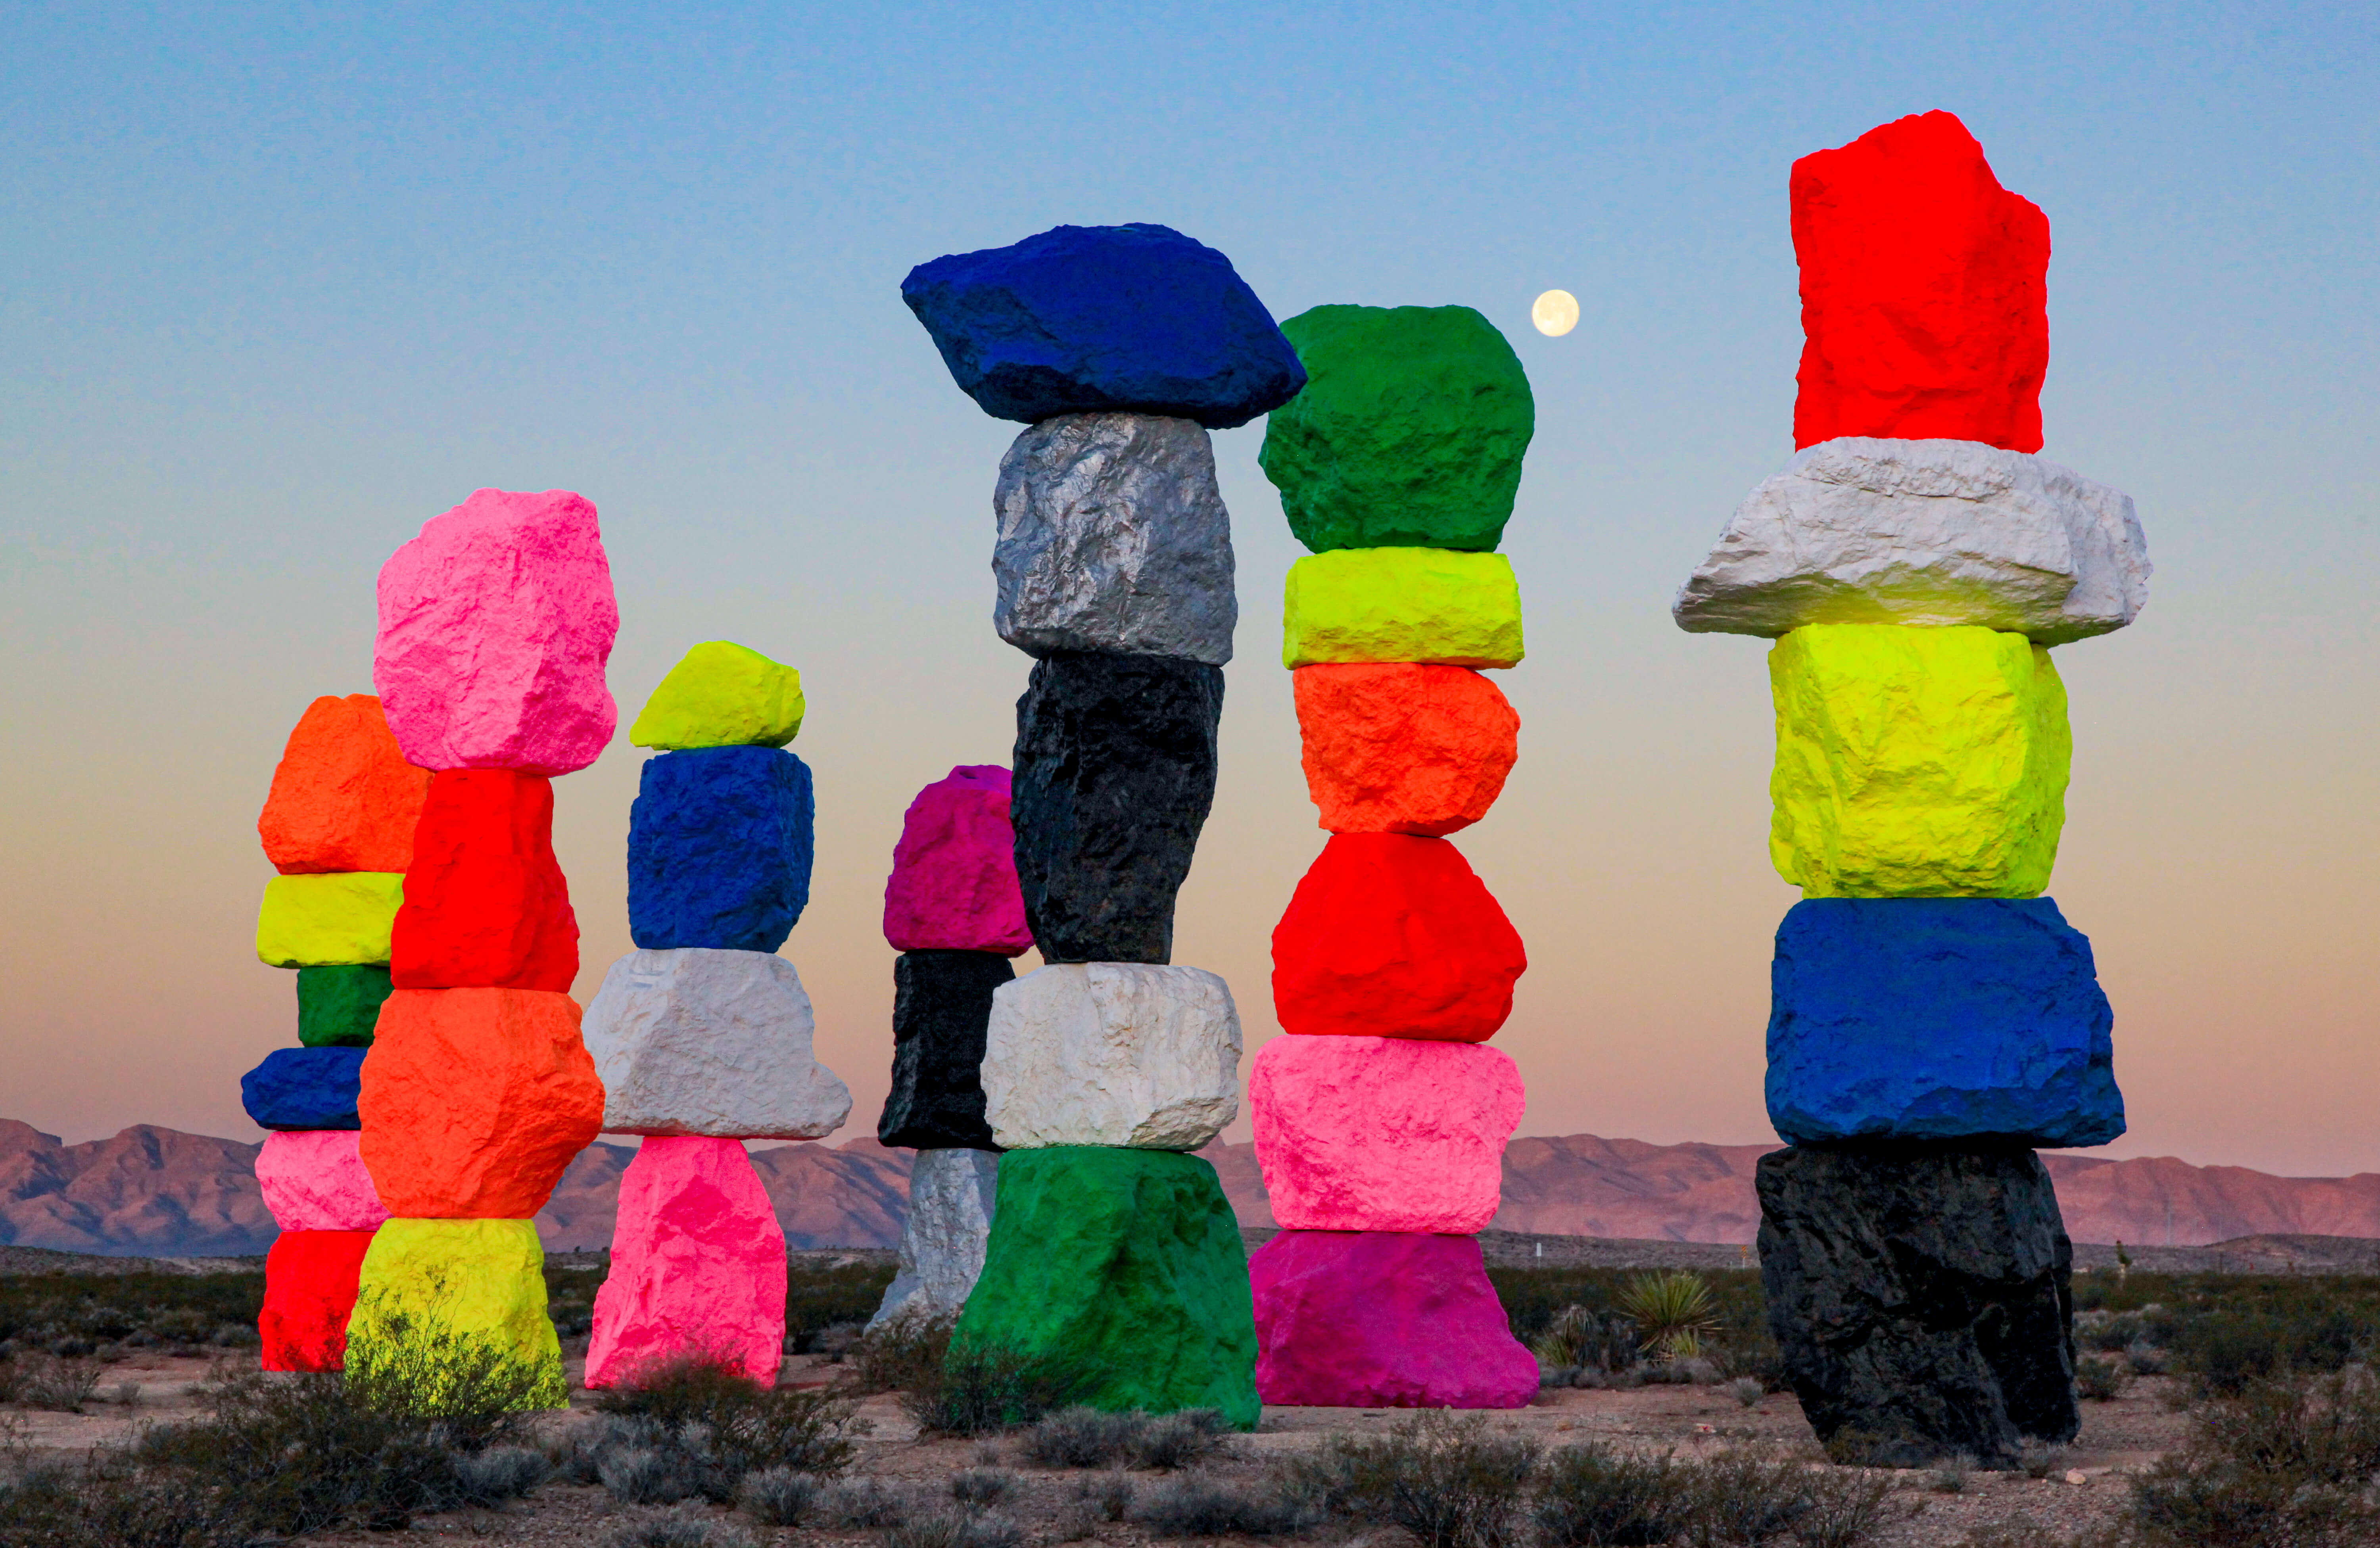 Gianfranco Gorgoni, _Ugo Rondinone's Seven Magic Mountains, near Jean Dry Lake, Nevada_, 2016. Chromogenic print. Photograph from the Collection of the Nevada Museum of Art, The Altered Landscape, Carol Franc Buck Collection, with additional support from the Estate of Nancy L. Peppin; Photograph © Estate of Gianfranco Gorgoni; Artwork co - produced and presented by the Nevada Museum of Art and Art Production Fund; Artwork © Ugo Rondinone.